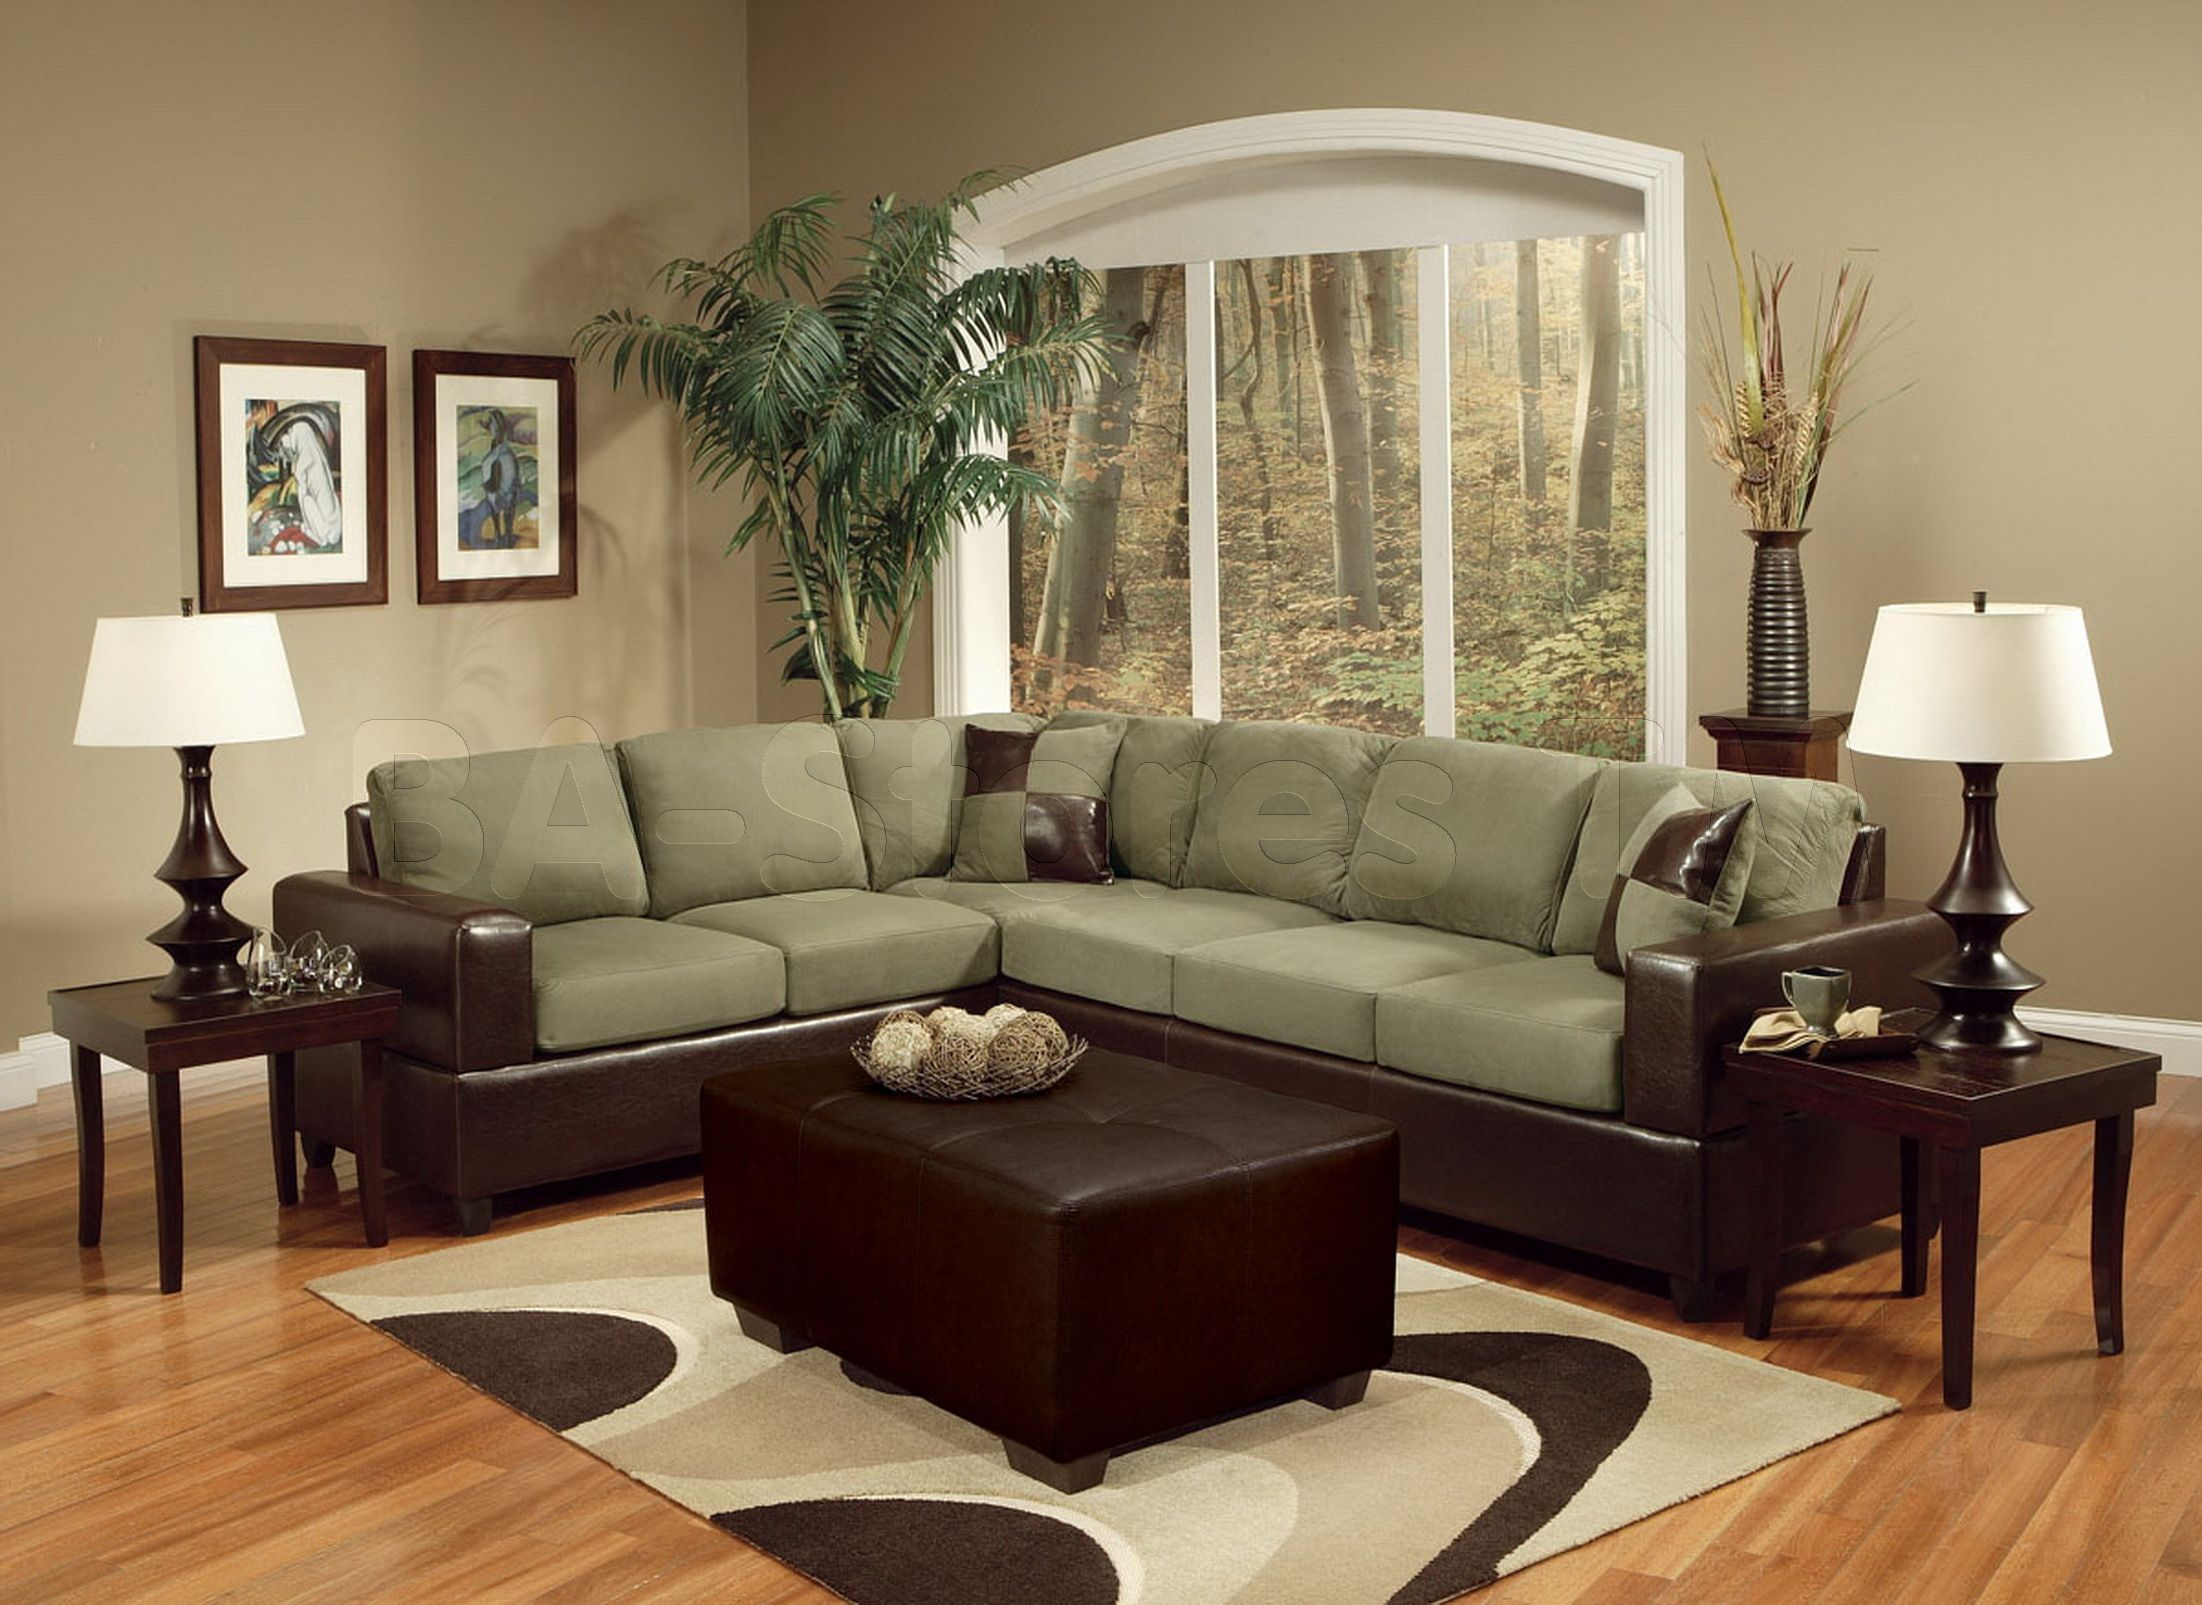 Madrid Pebble Easy Rider Espresso Bycast PU 2 PC Sectional Sofa